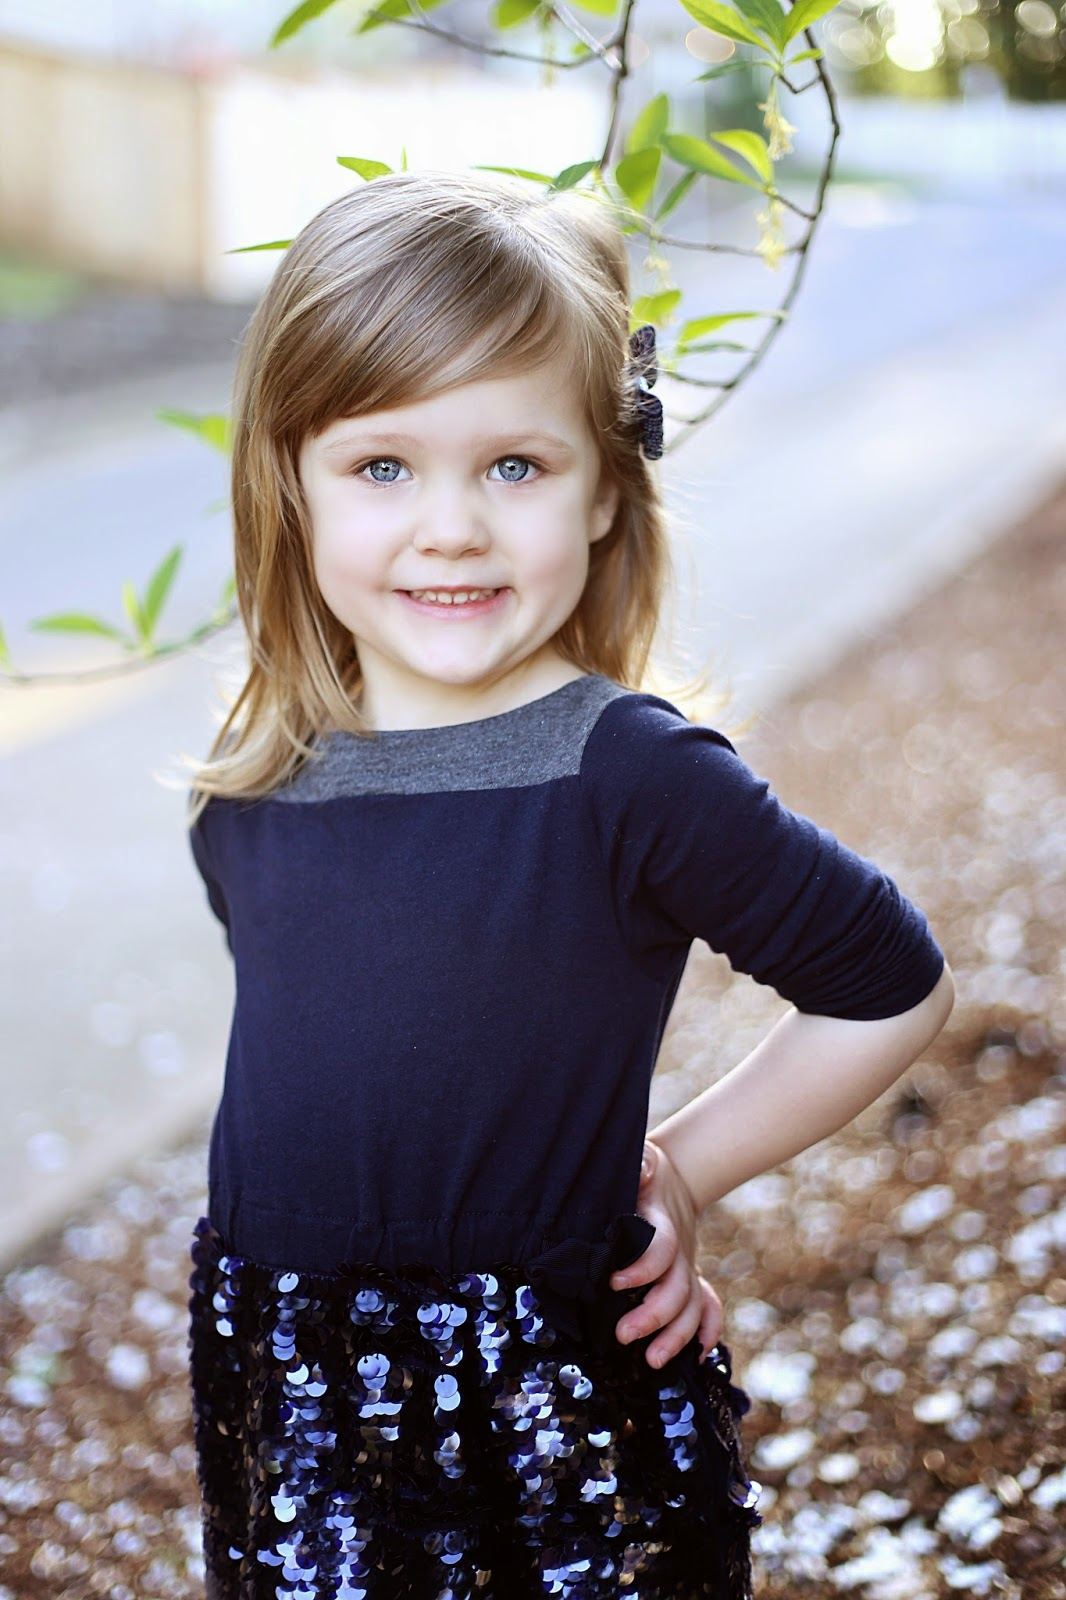 spotted:stills photography, child photographer, natural light, portland oregon photographer, happy valley oregon photographer, clackamas oregon photographer